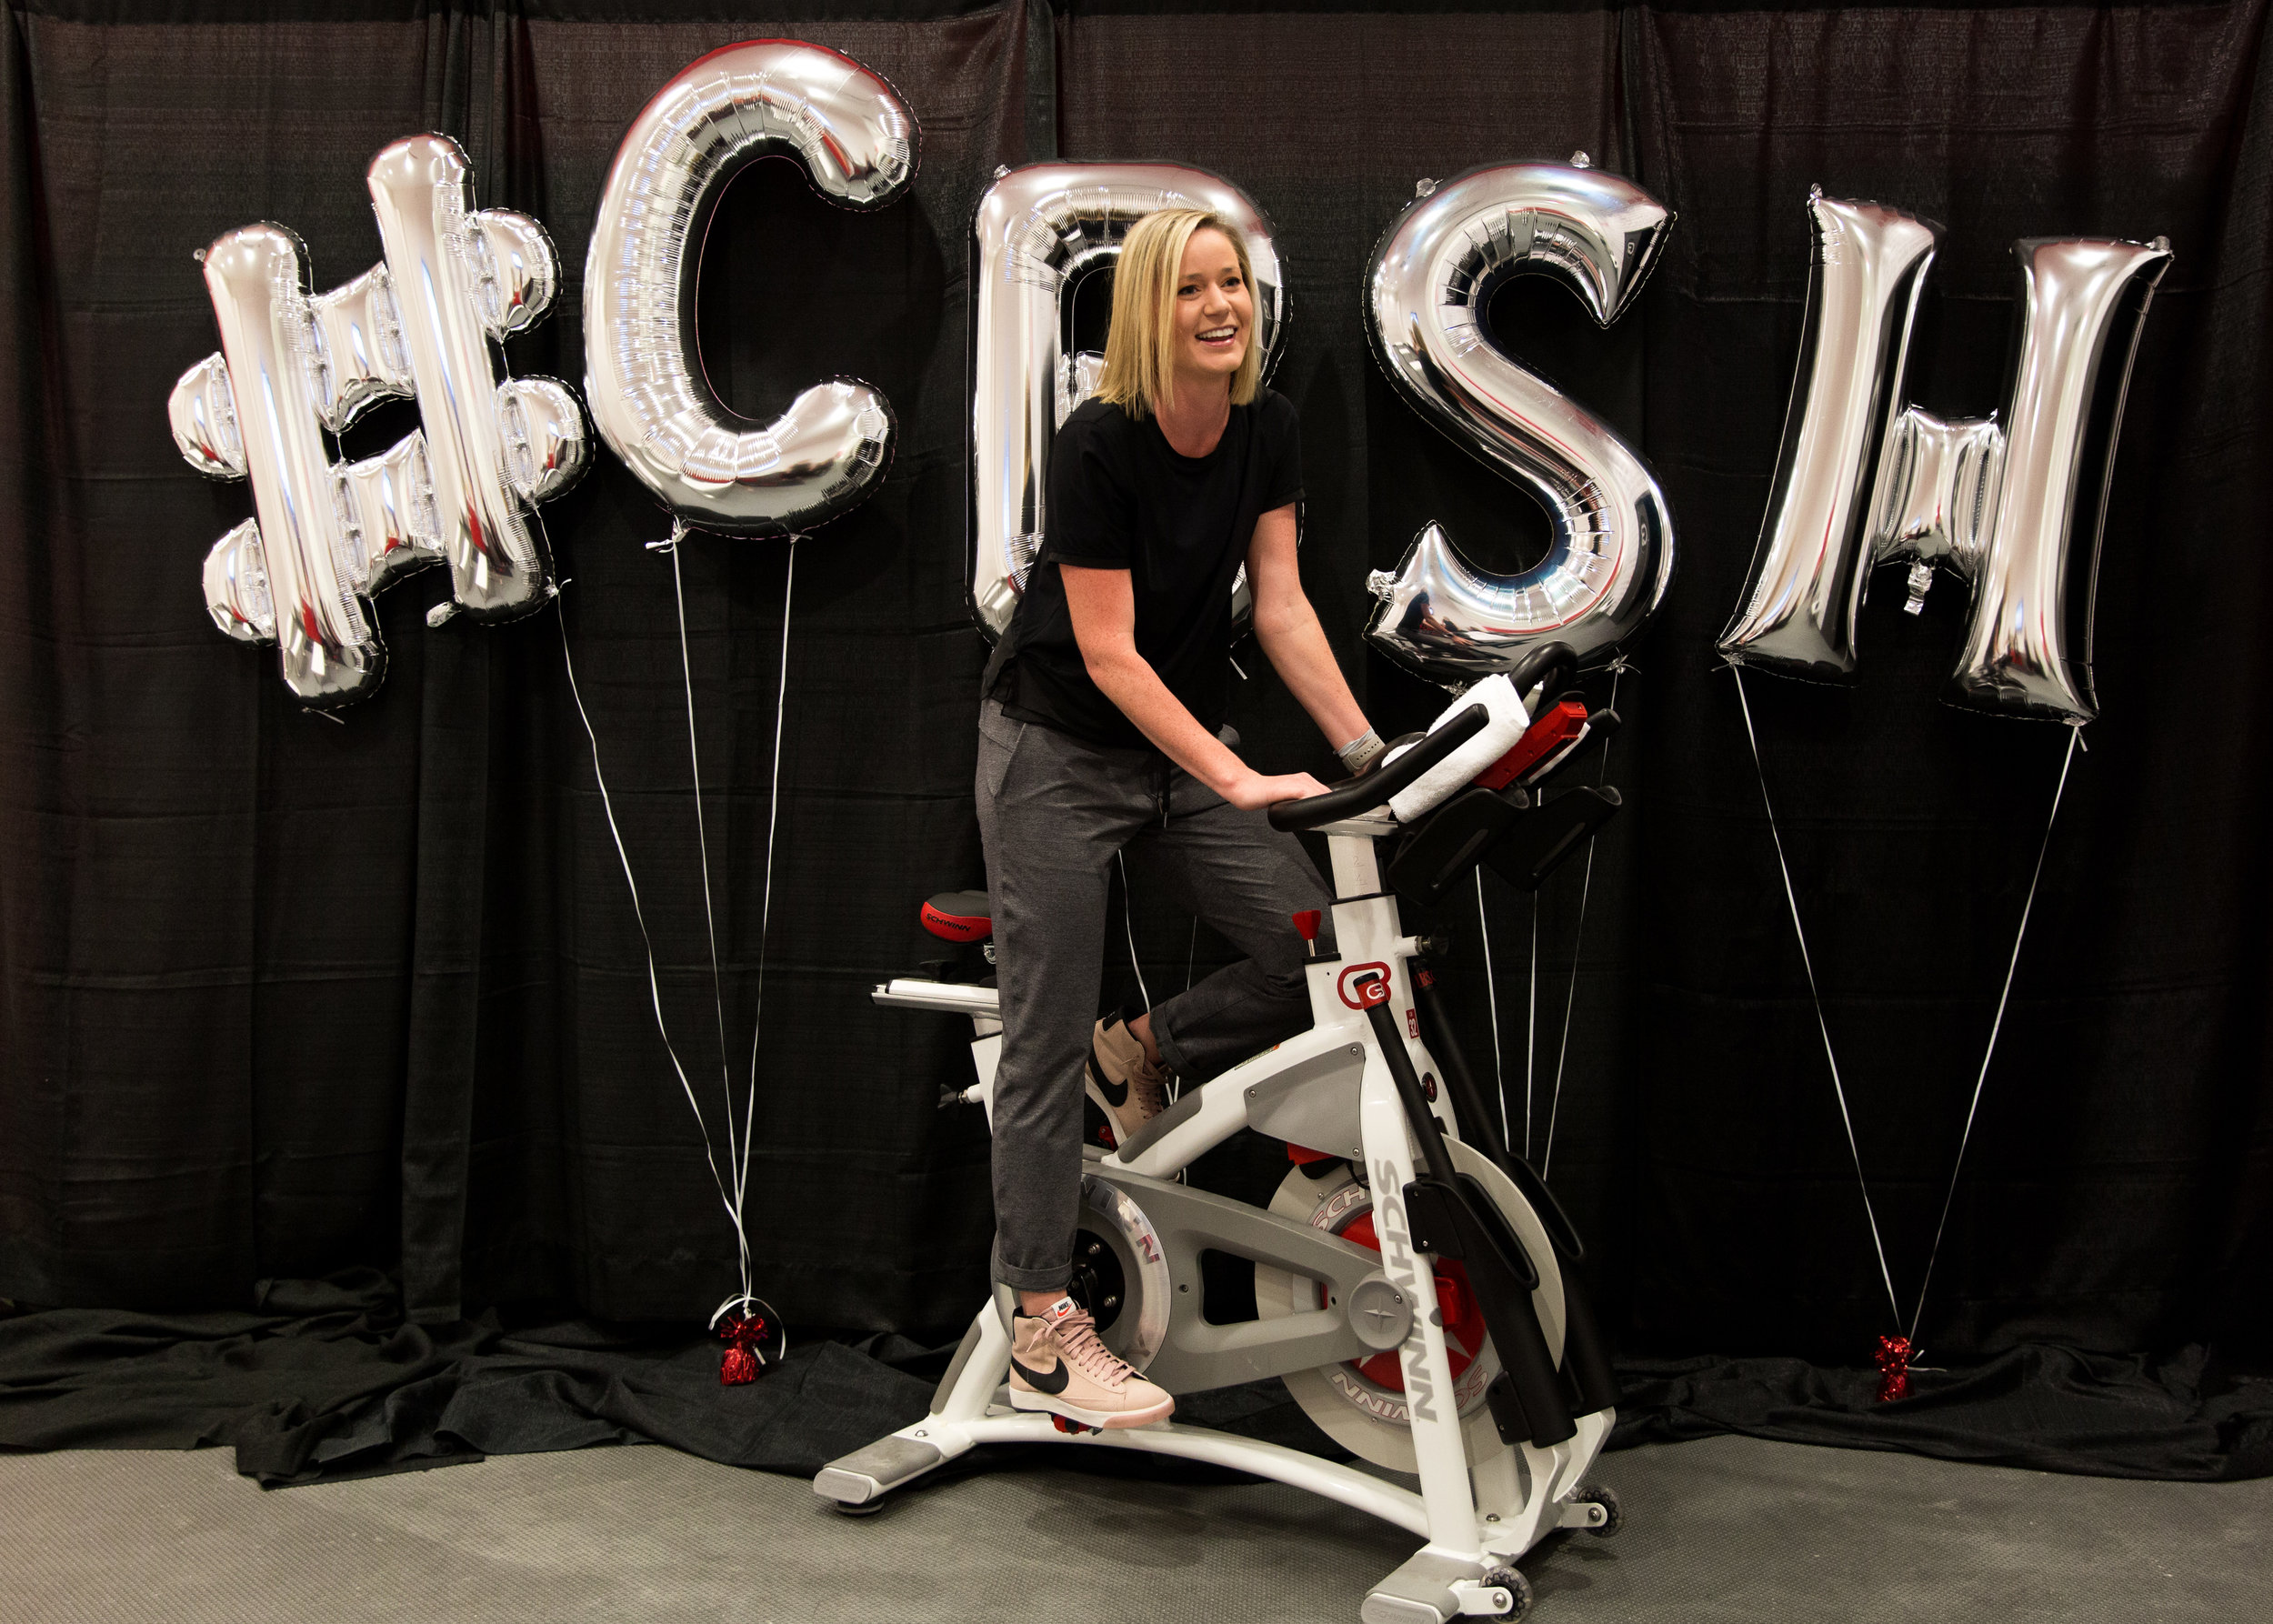 Kirby-Gladstein-CycleBar-Sawyer-Heights-Influencer-Night-2017-1655.jpg